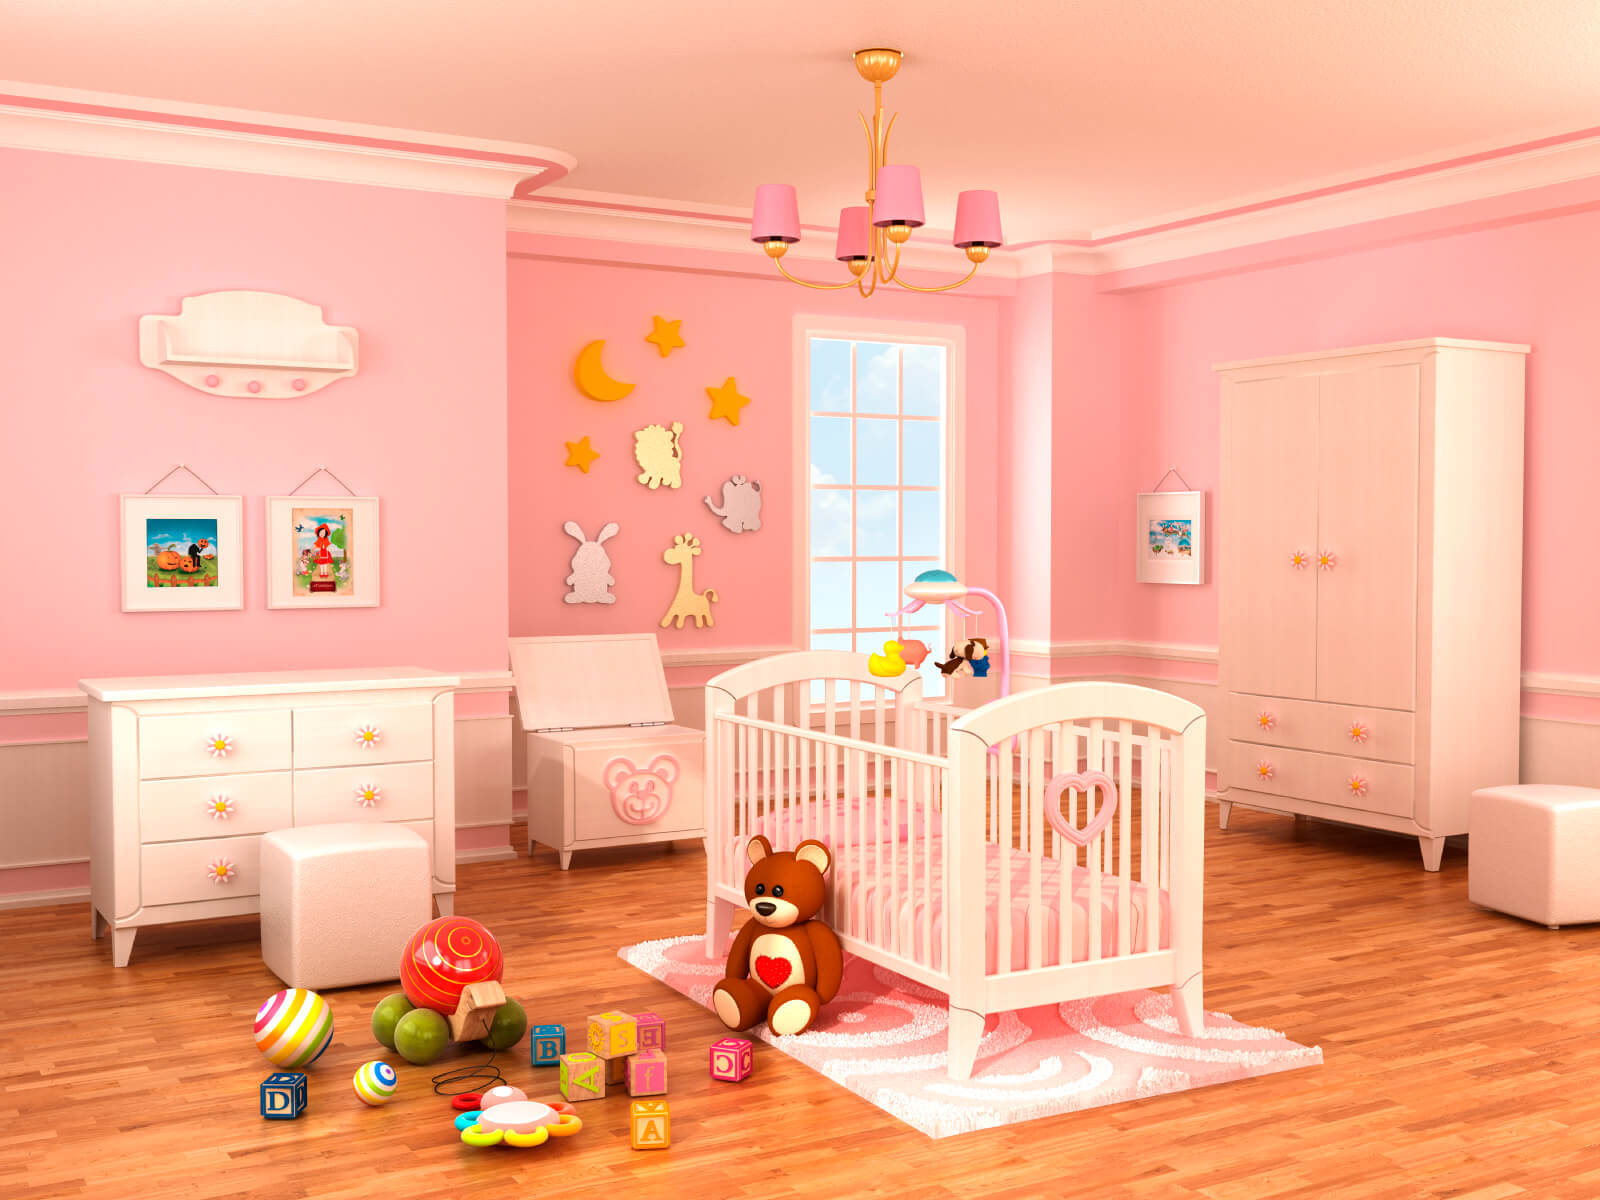 18 baby girl nursery ideas themes designs pictures - Pics of girl room ideas ...